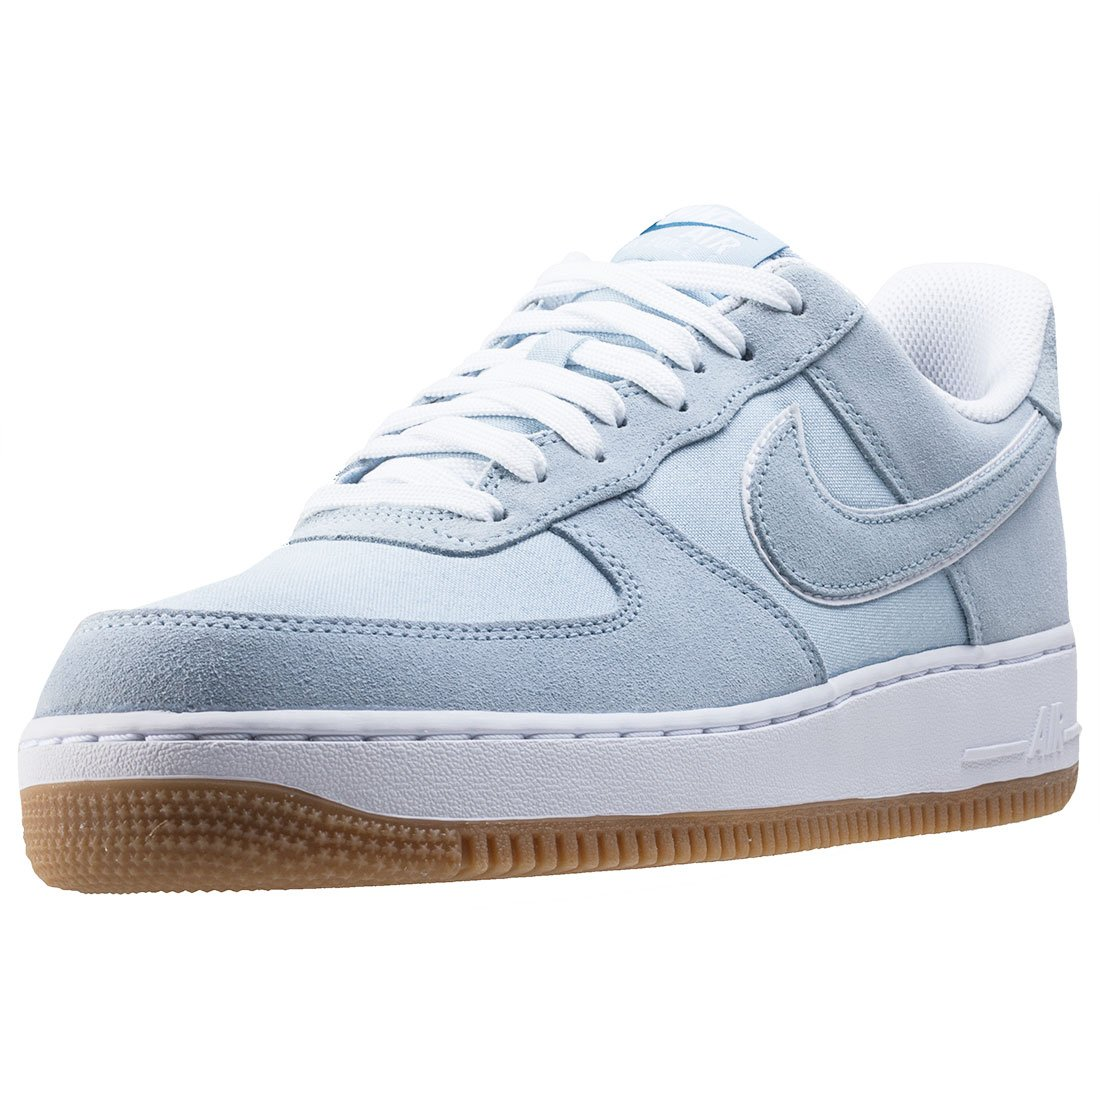 buy online 2f342 acdc6 Galleon - Nike Mens Air Force 1 Low LT Armory Blue/Lt Armory Blue/White/Gum  Lt Brown Leather Basketball Shoes 12 M US